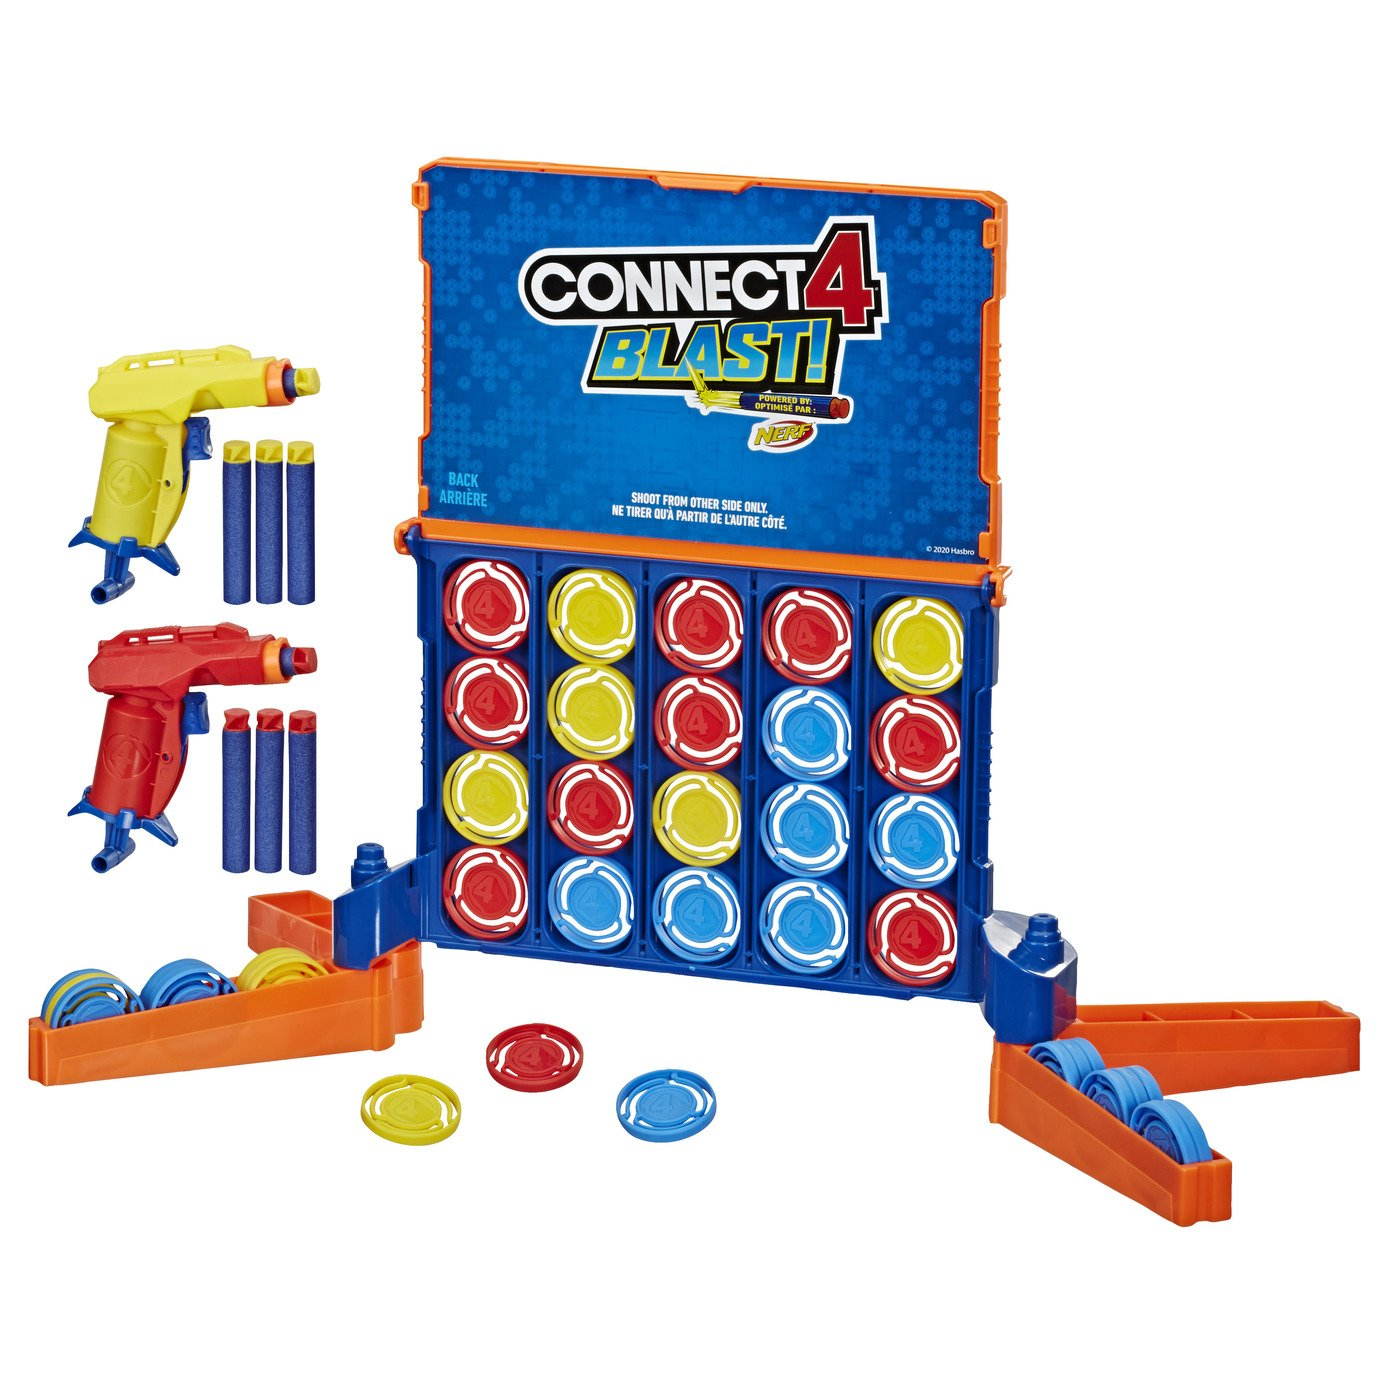 Connect 4 Nerf by Hasbro Gaming